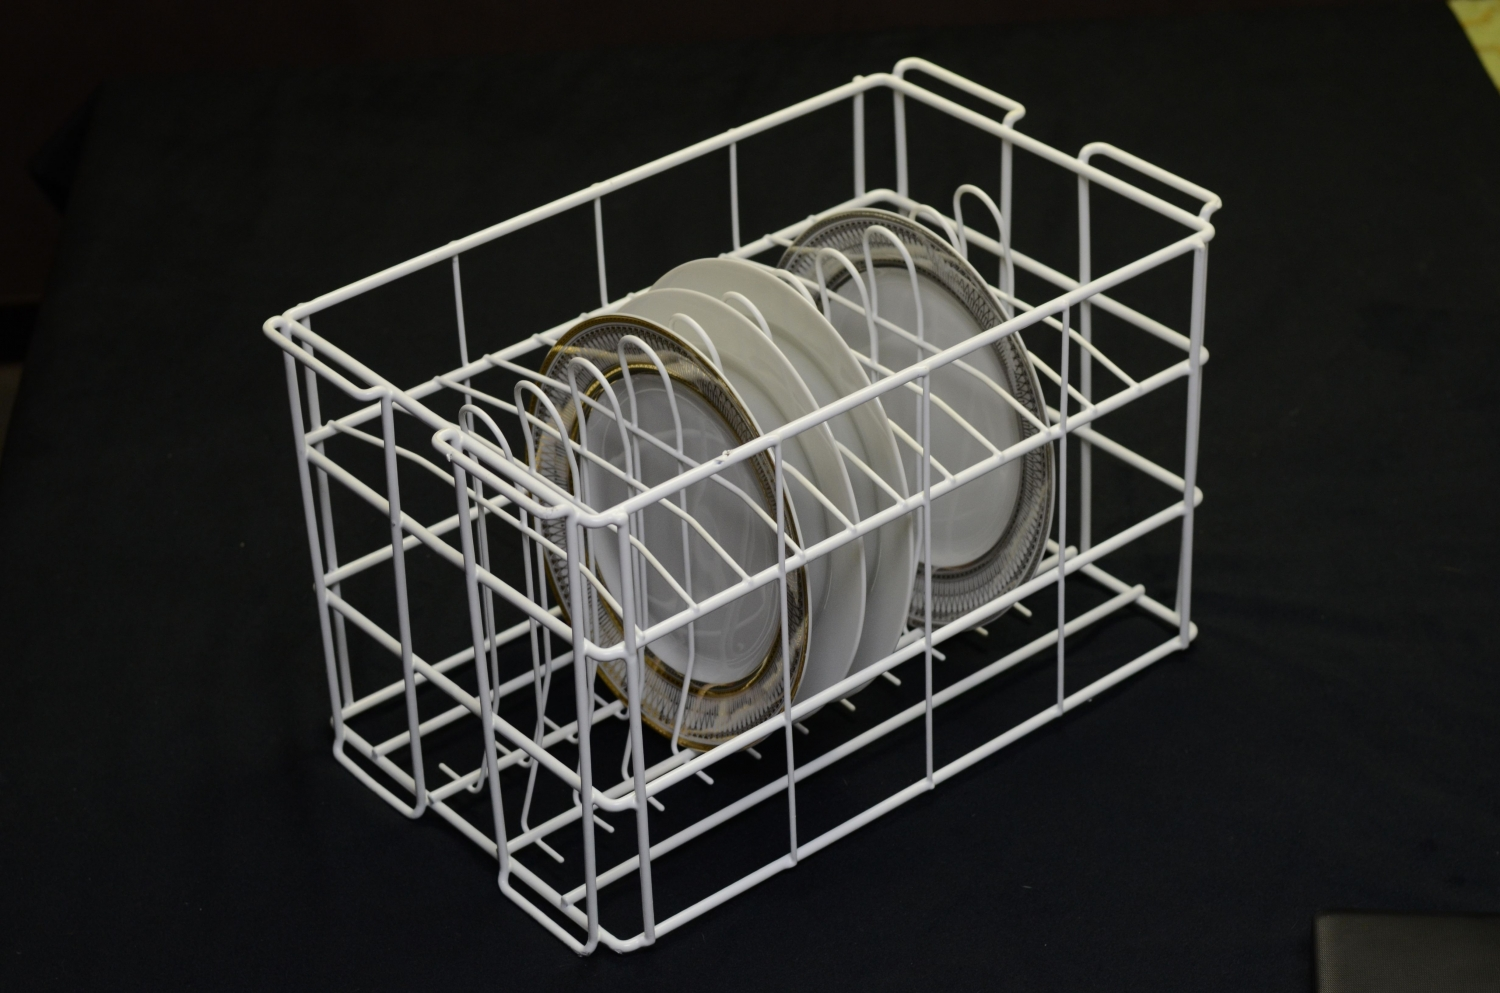 10 Strawberry Street WPLTR12 12 Compartment Rack for Porcelain Charger Plates - 4 pcs